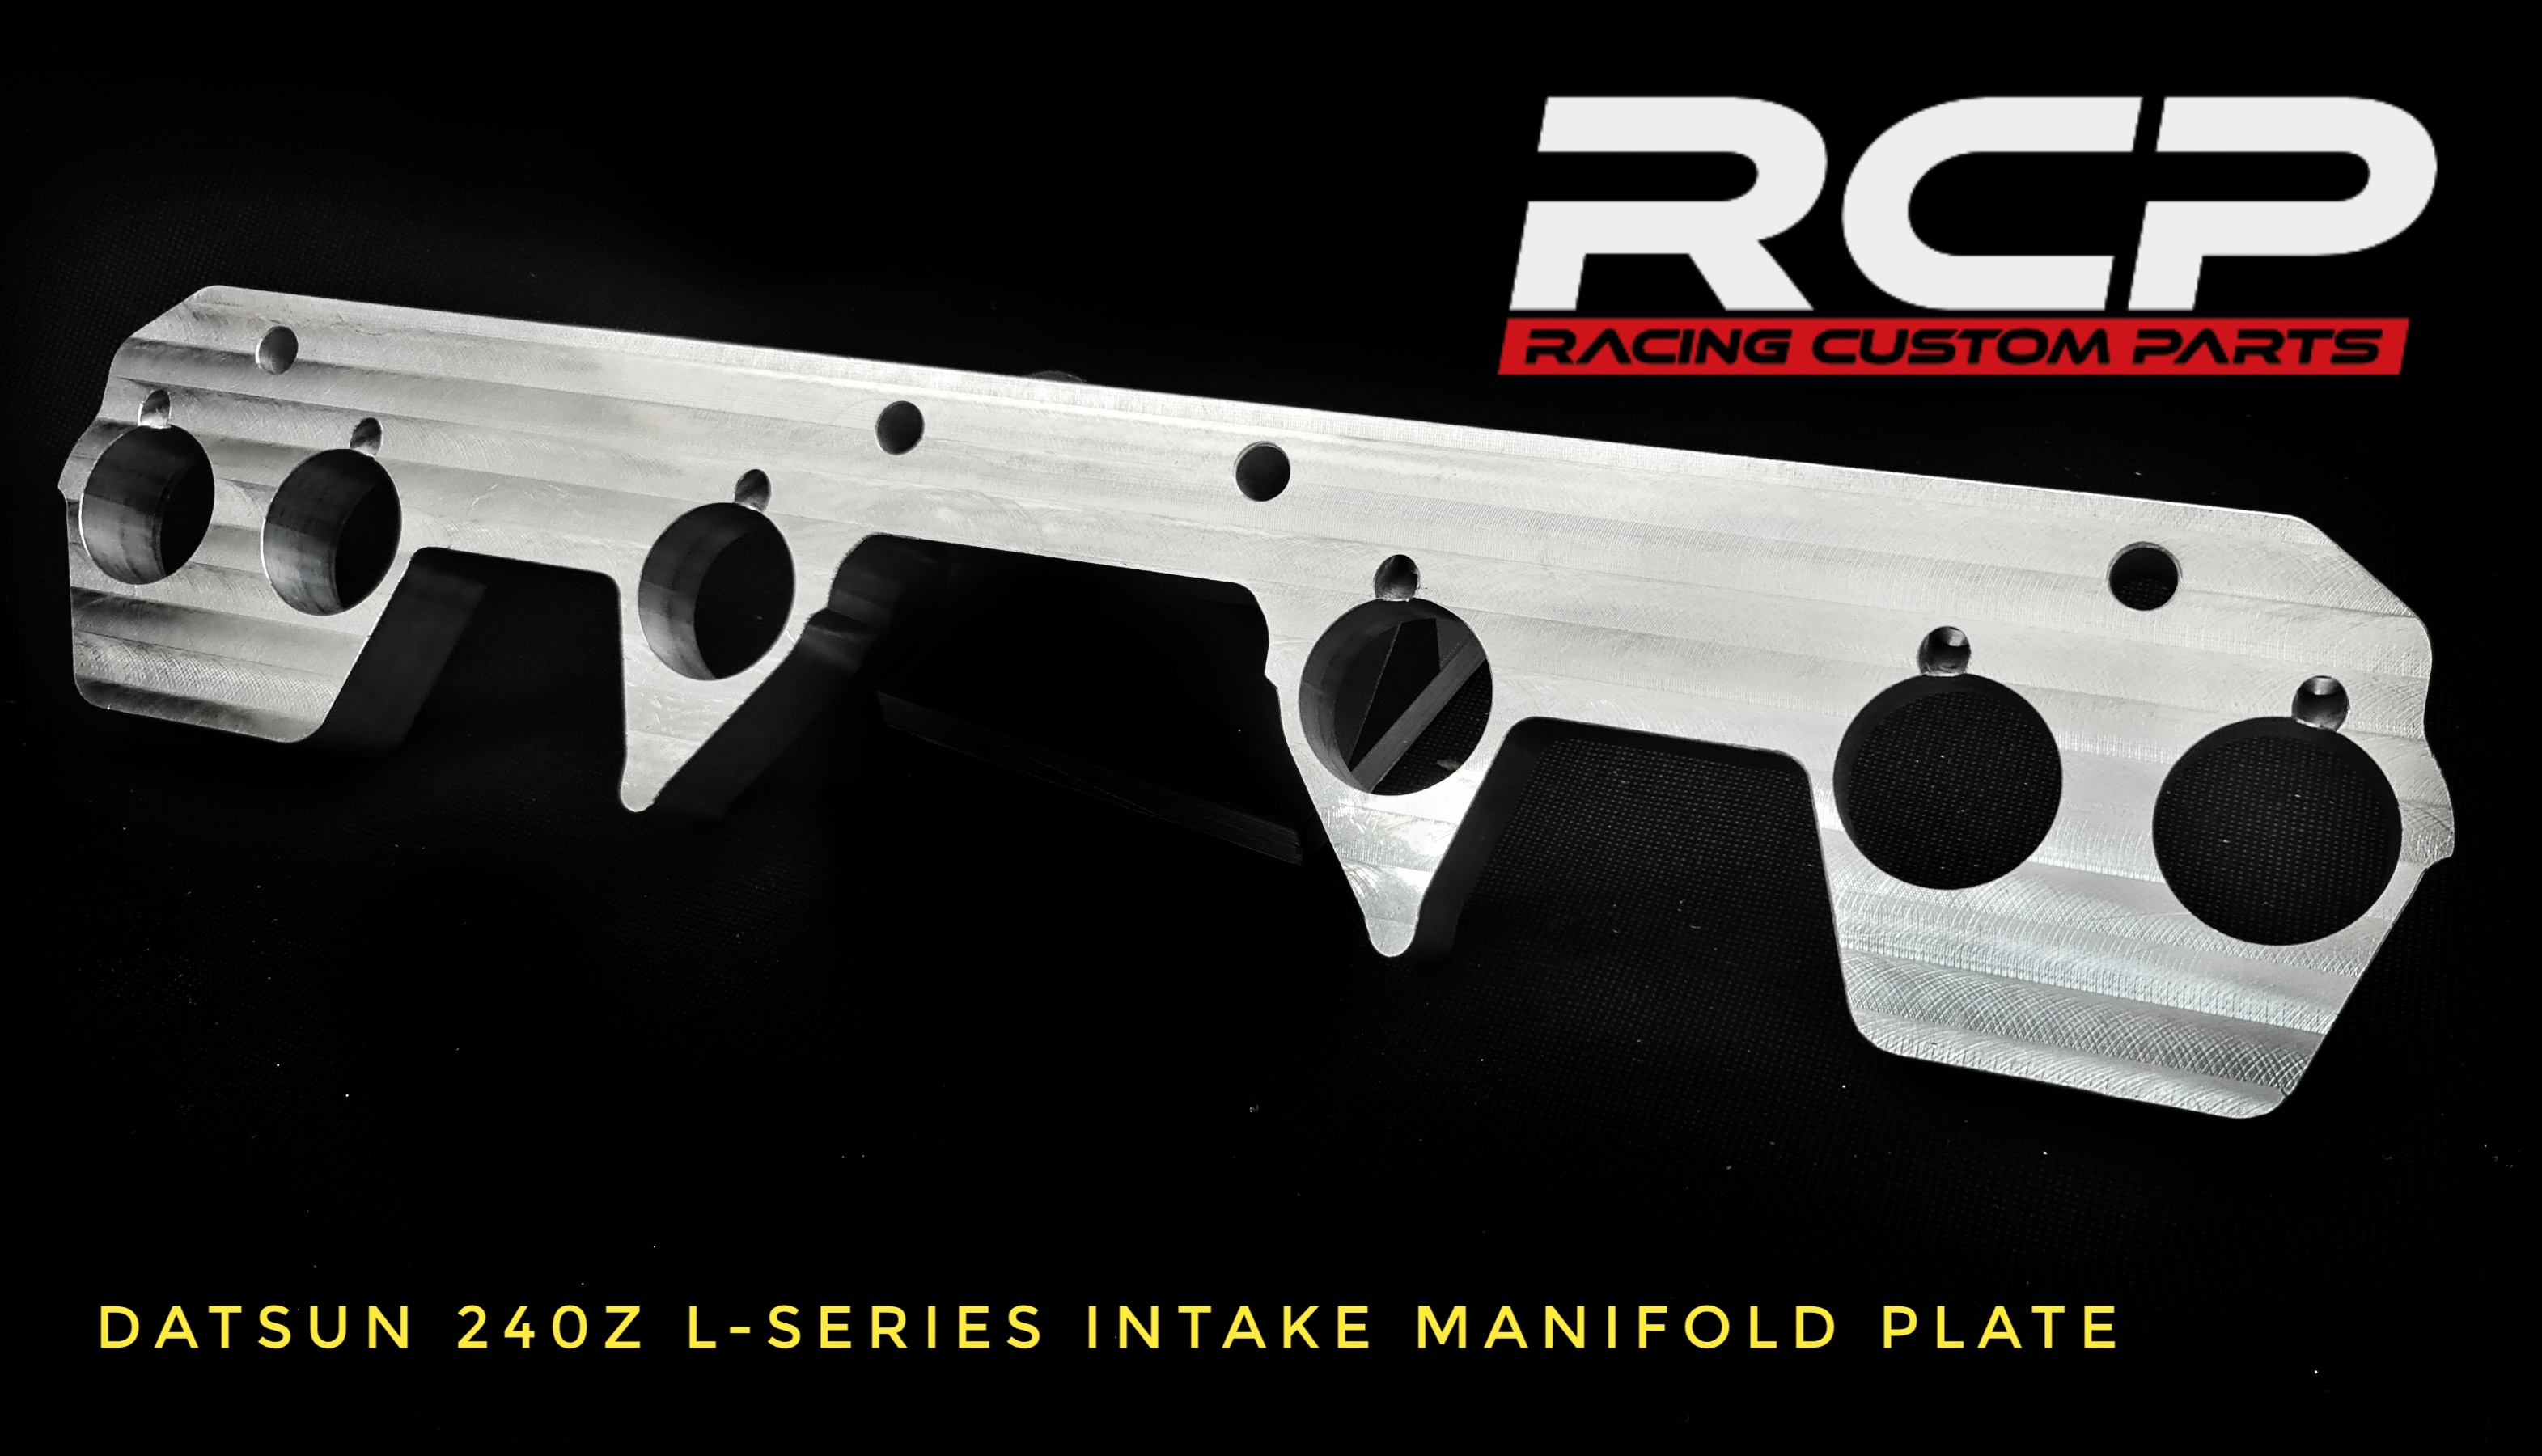 datsun 240z l-series intake manifold plate billet cnc racing custom parts turbo